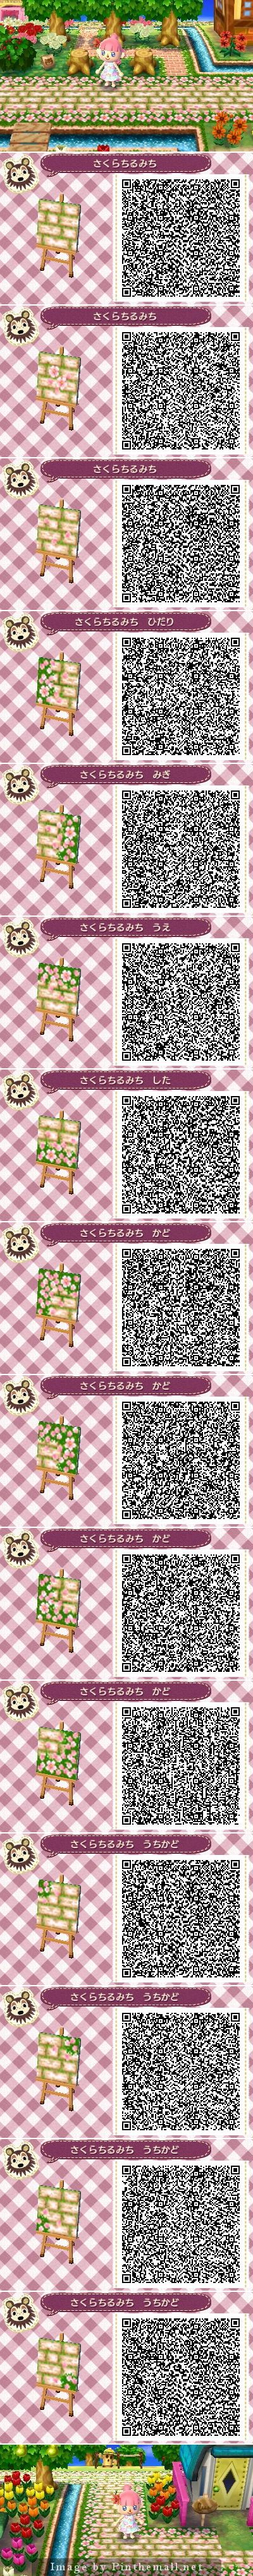 QR path: Sakura blossom bordered brick path